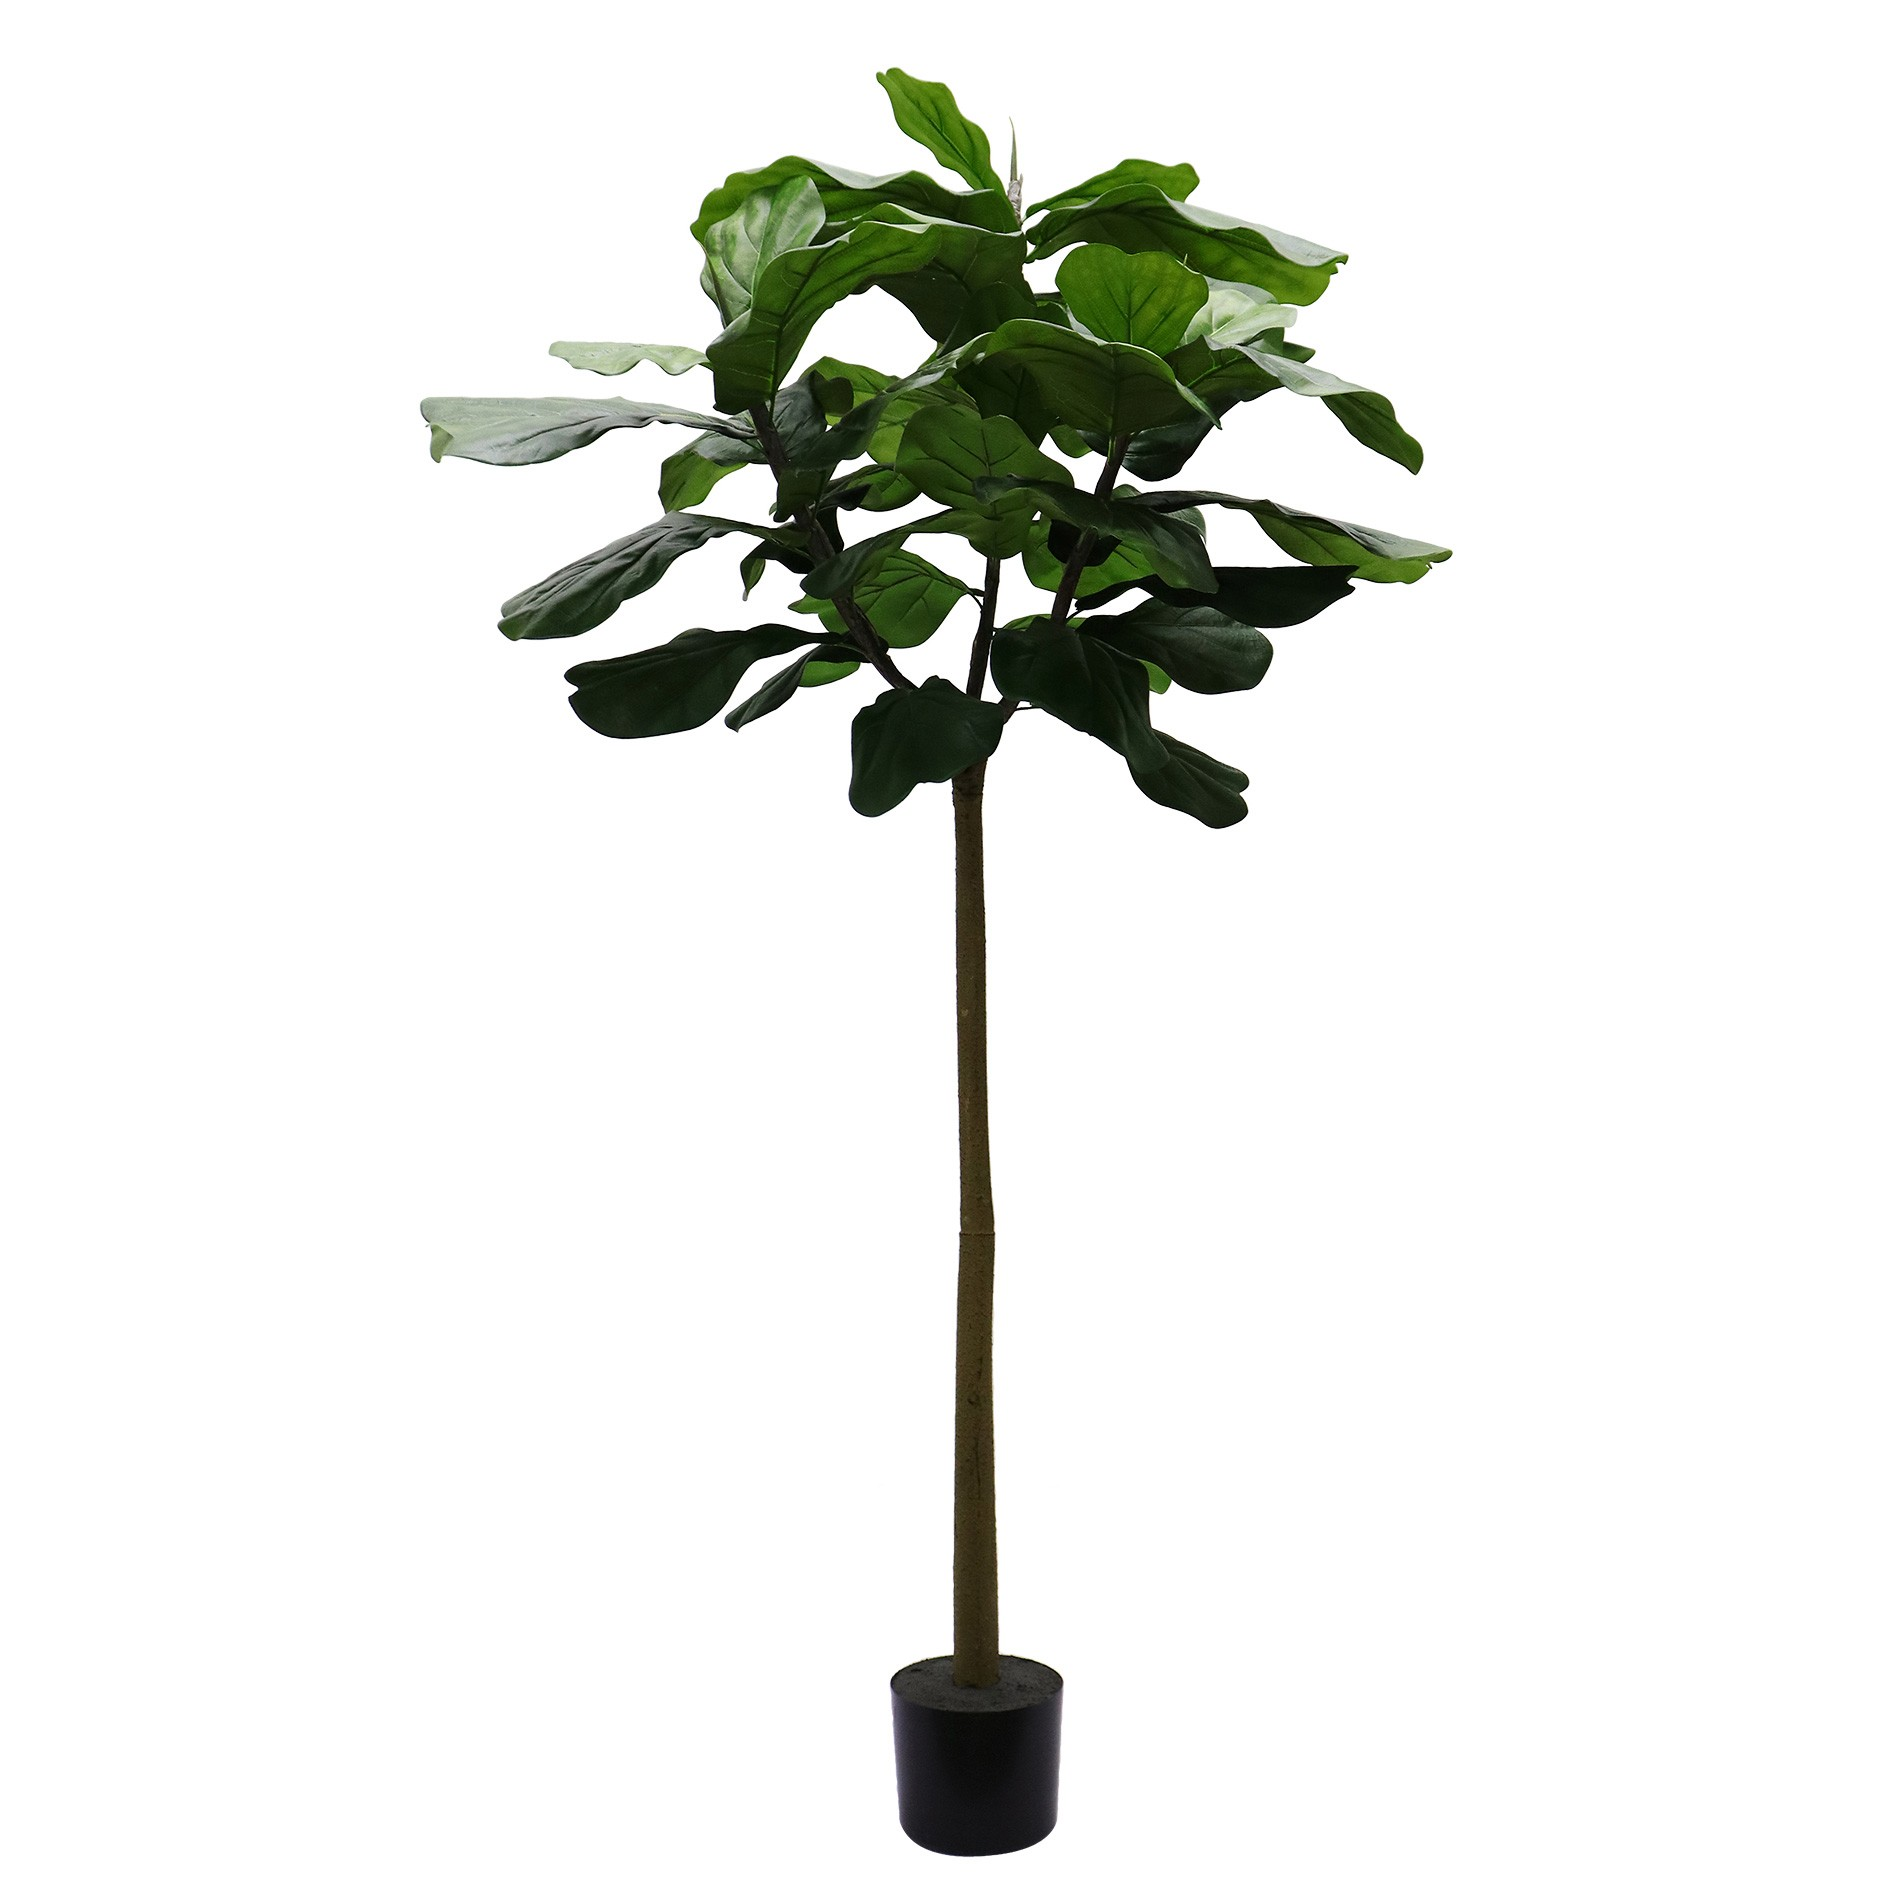 Potted Artificial Fiddle Leaf Fig Tree, 180cm